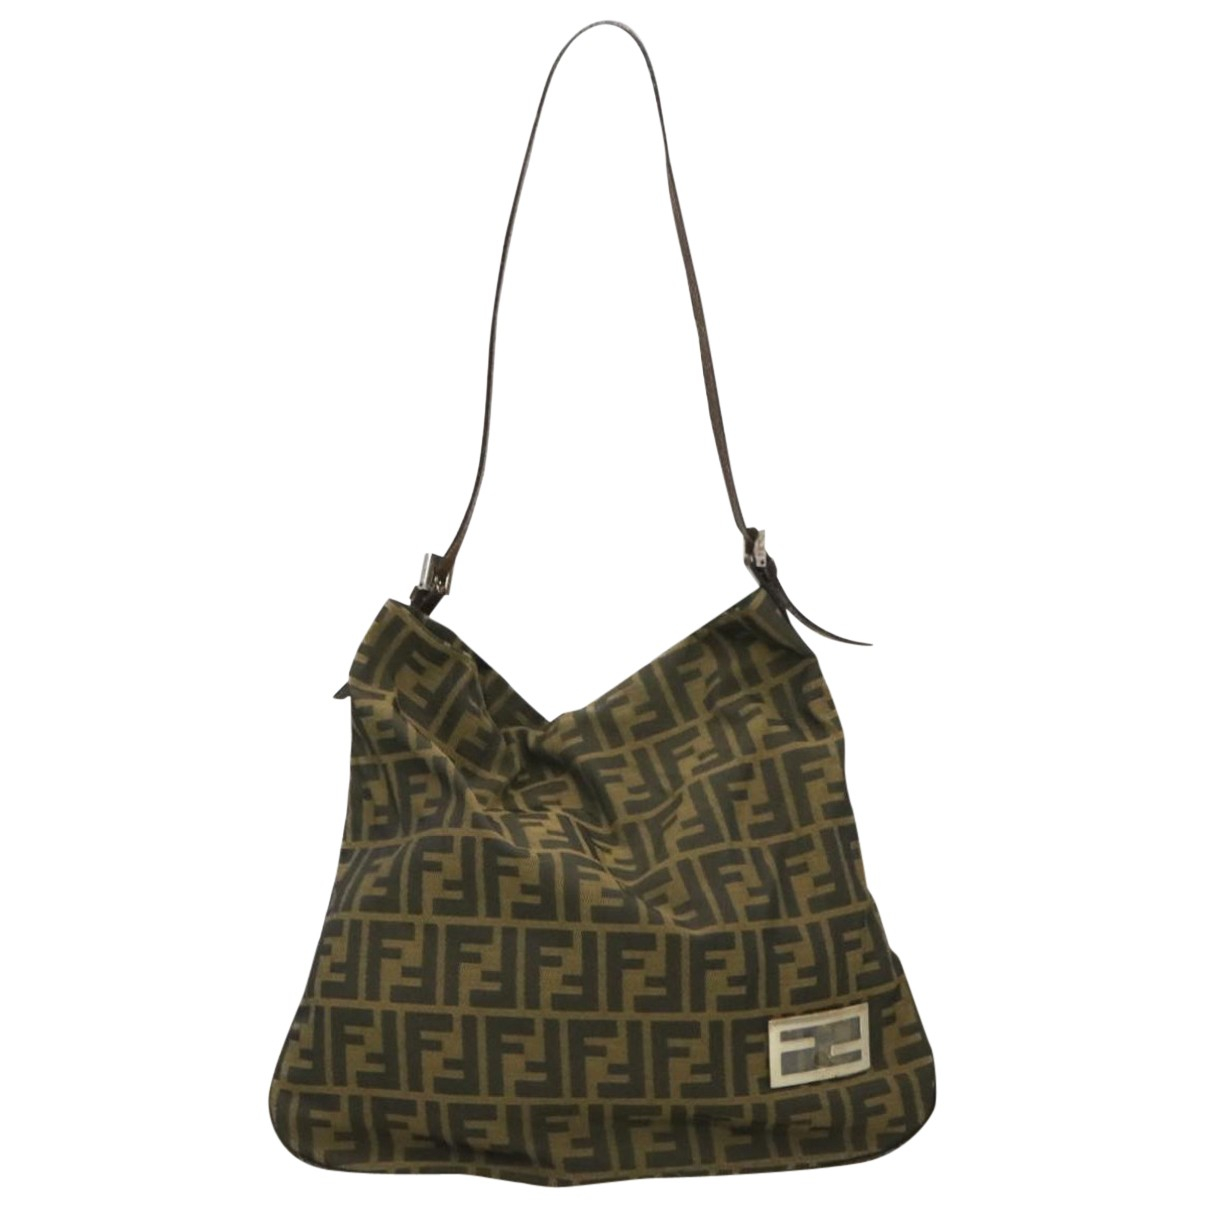 Fendi N Cloth handbag for Women N